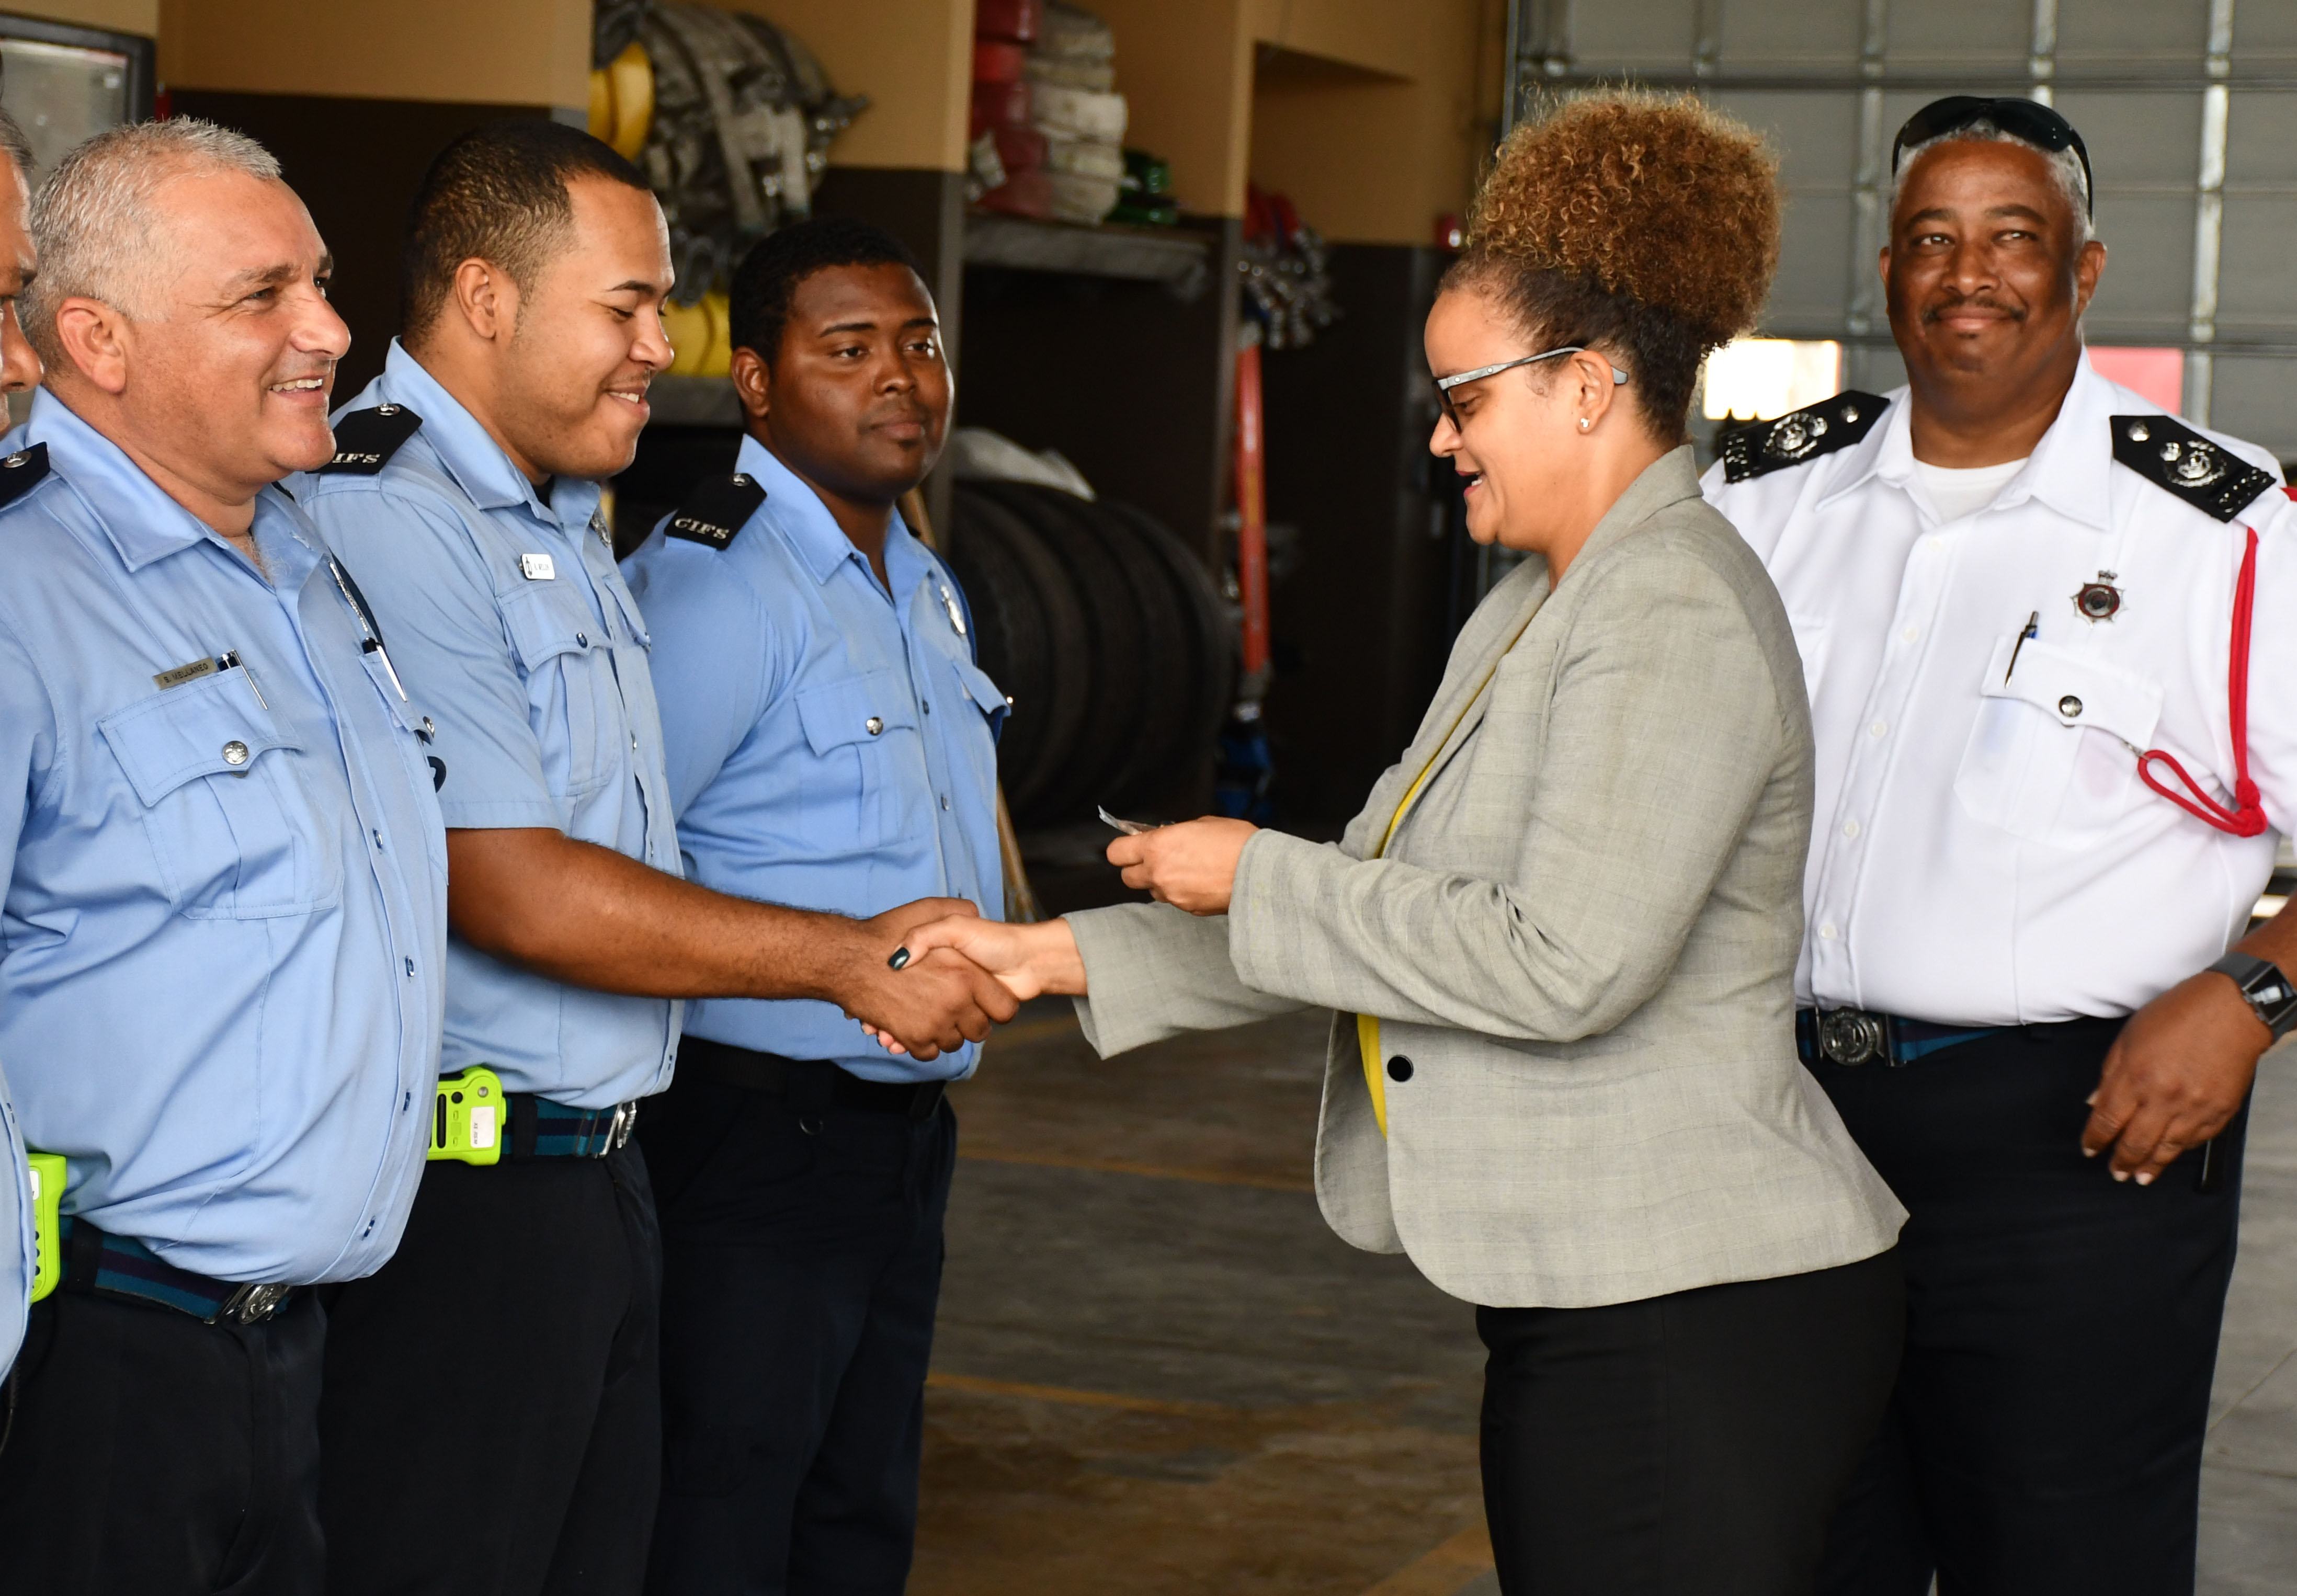 Minister Rivers presents fire officers with their challenge coins.